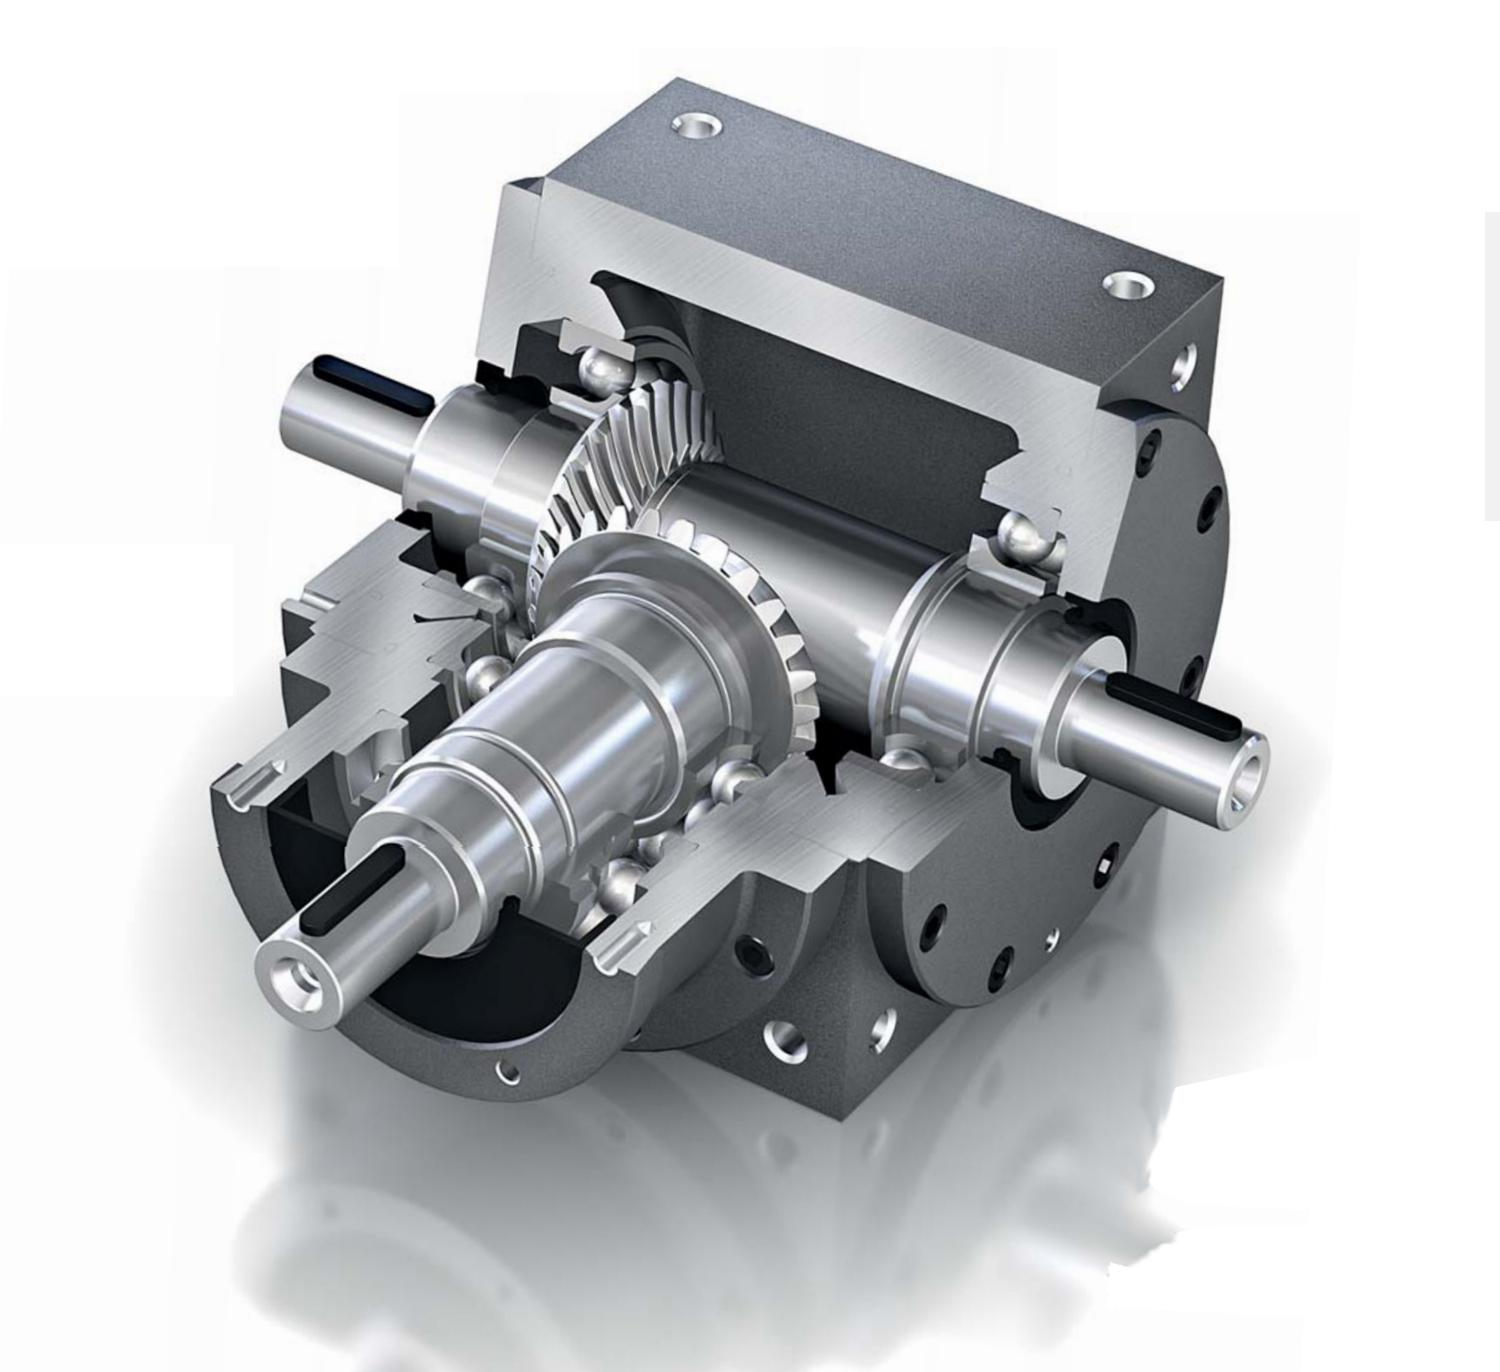 Design features that set PowerGear Miniature apart from other gearboxes include a case-hardened bevel gear tooth system, a friction locked shaft and bevel gear fit and an extremely lightweight aluminium housing. This ensures low backlash and high transmission accuracy alongside an energy efficiency of 98%